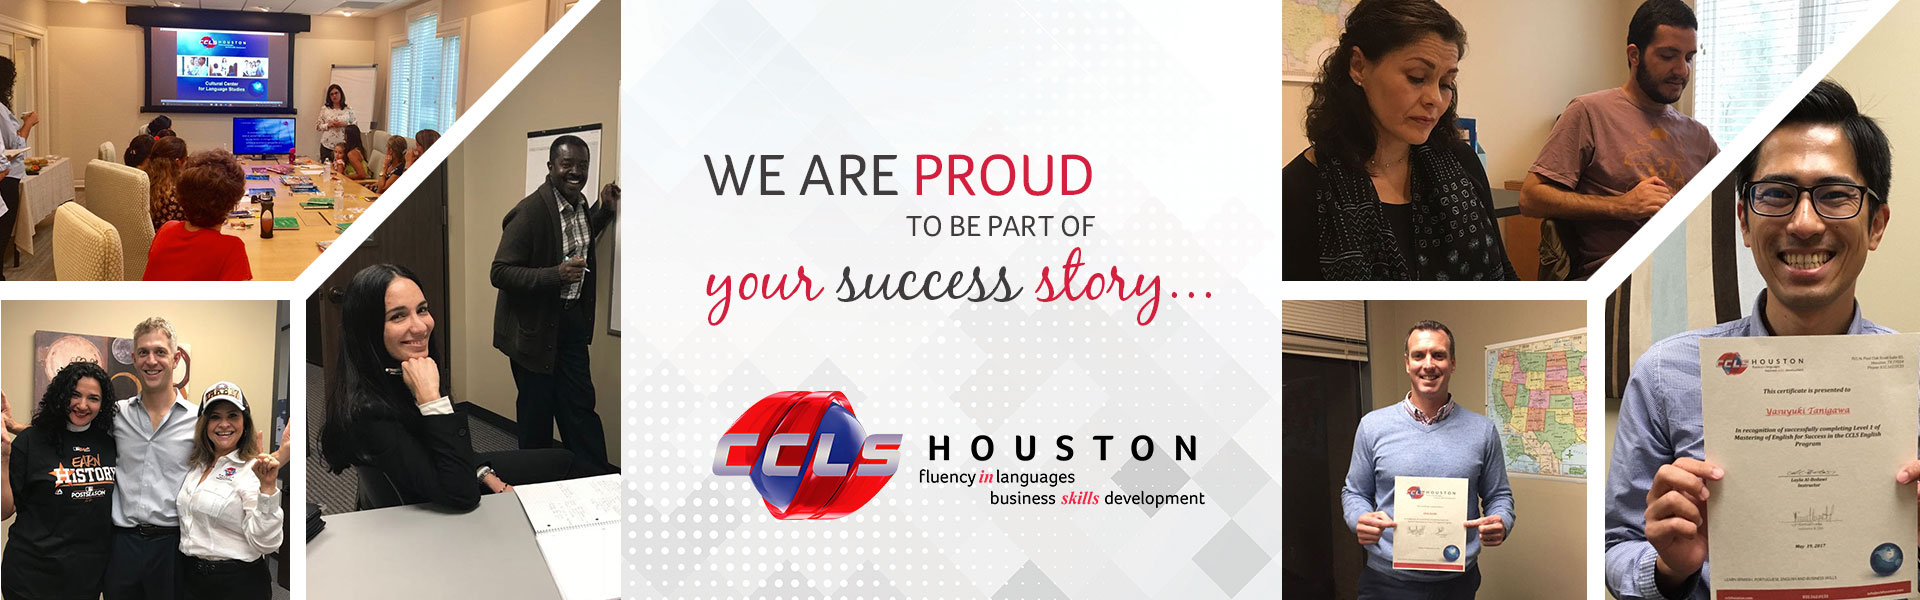 At CCLS Houston we are part of you